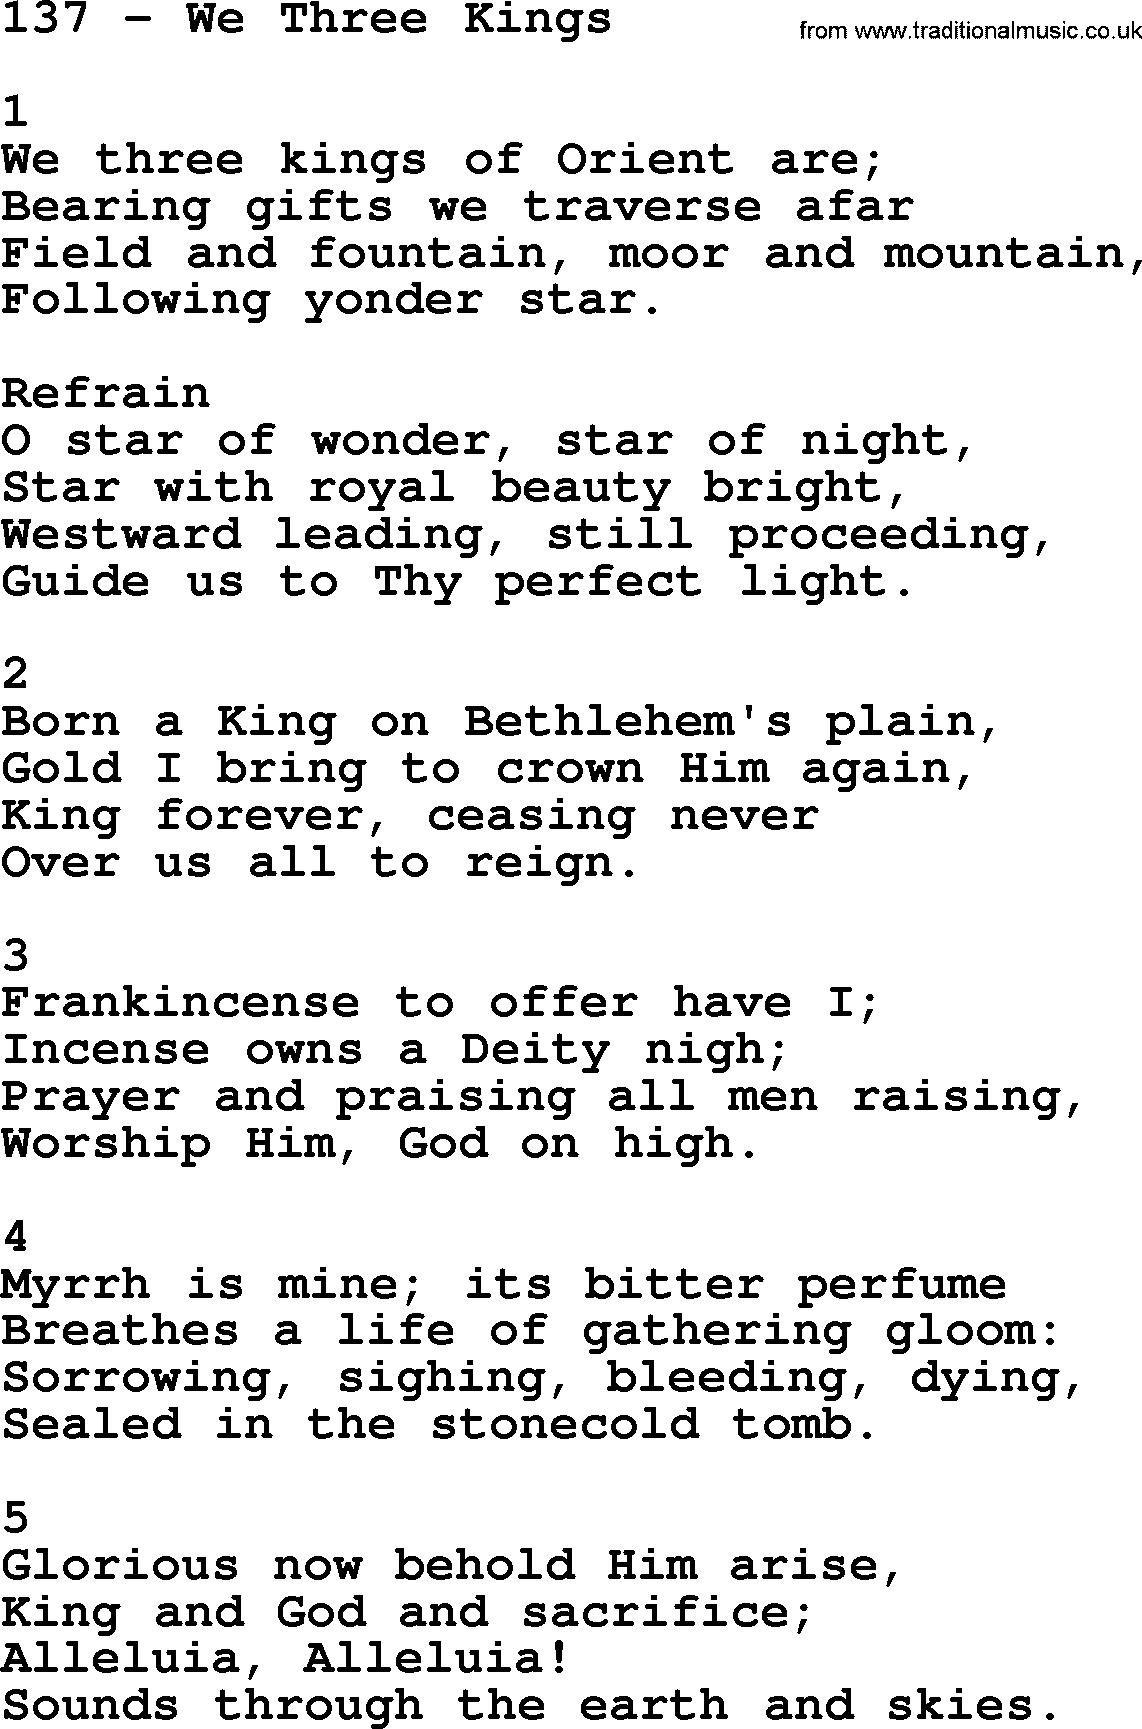 Adventist Hymnal, Song: 137-We Three Kings, with Lyrics, PPT, Midi, MP3 and PDF